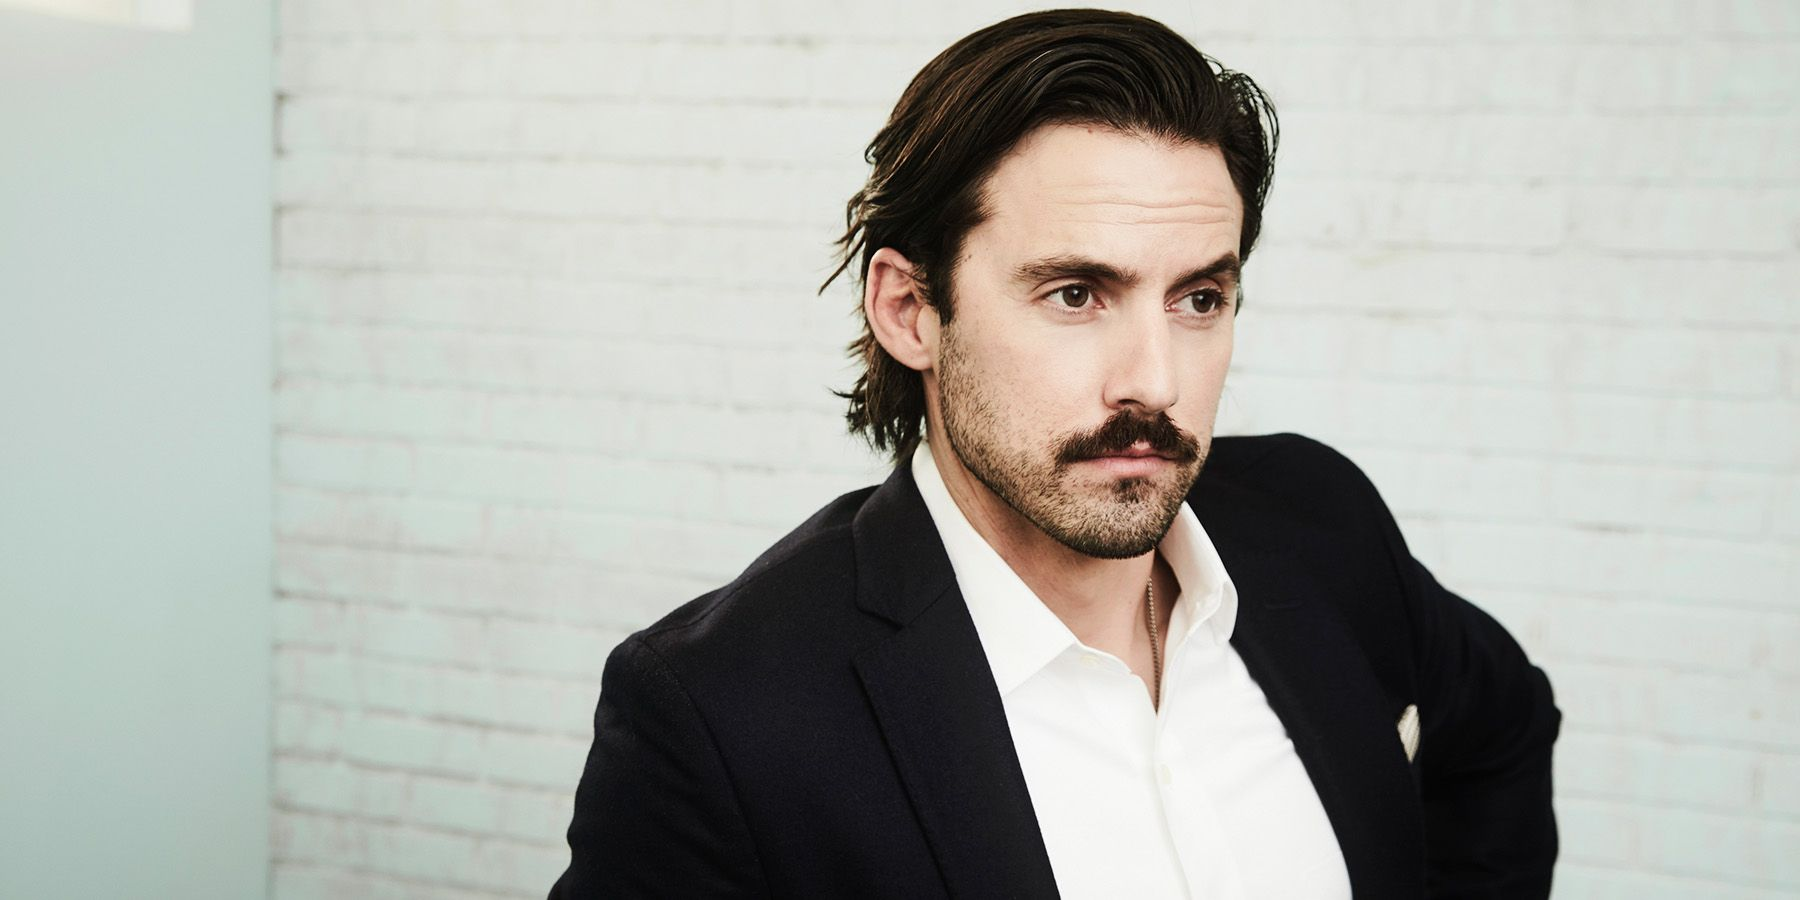 Milo Ventimiglia Believes in Denim on Denim and Hemingway s Mustache image  Getty Images  Milo Ventimiglia